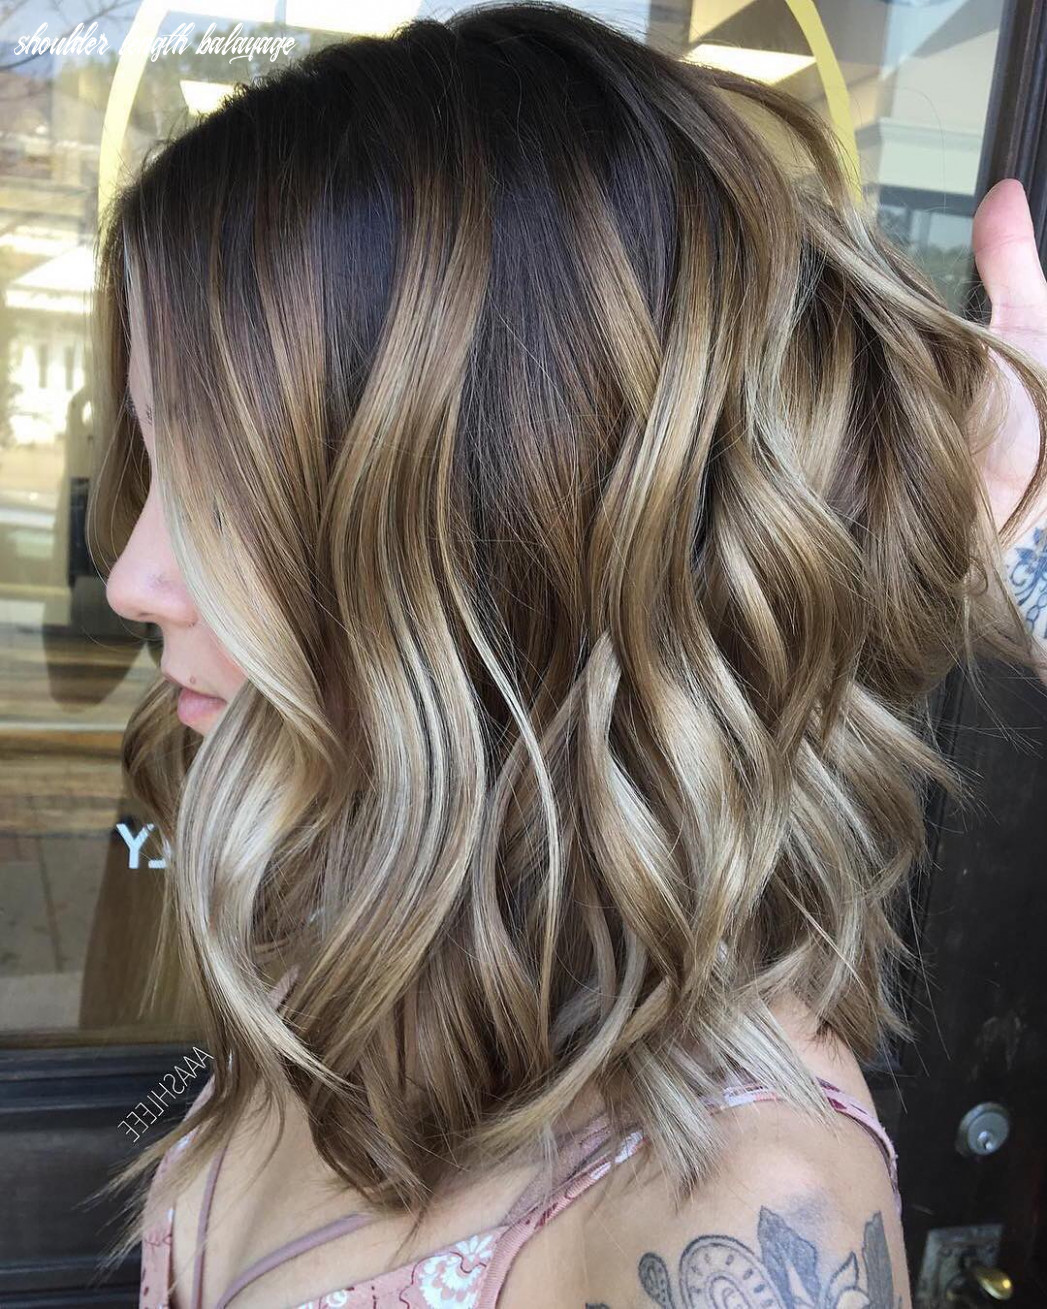 11 ombre balayage hairstyles for medium length hair, hair color 11 shoulder length balayage